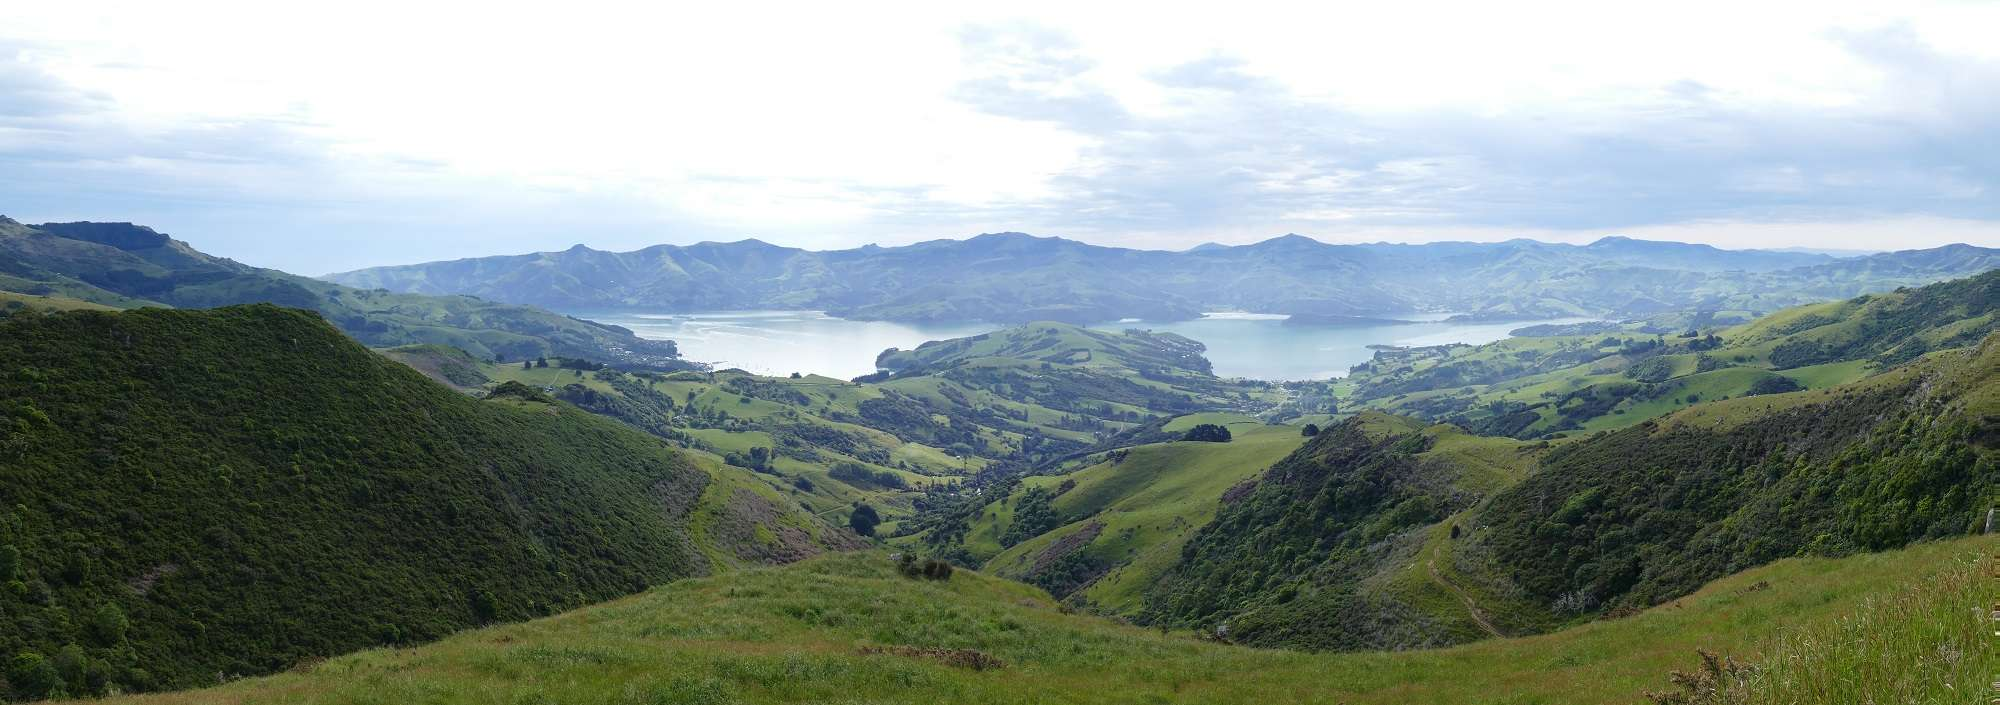 List of Banks Peninsula Endemics